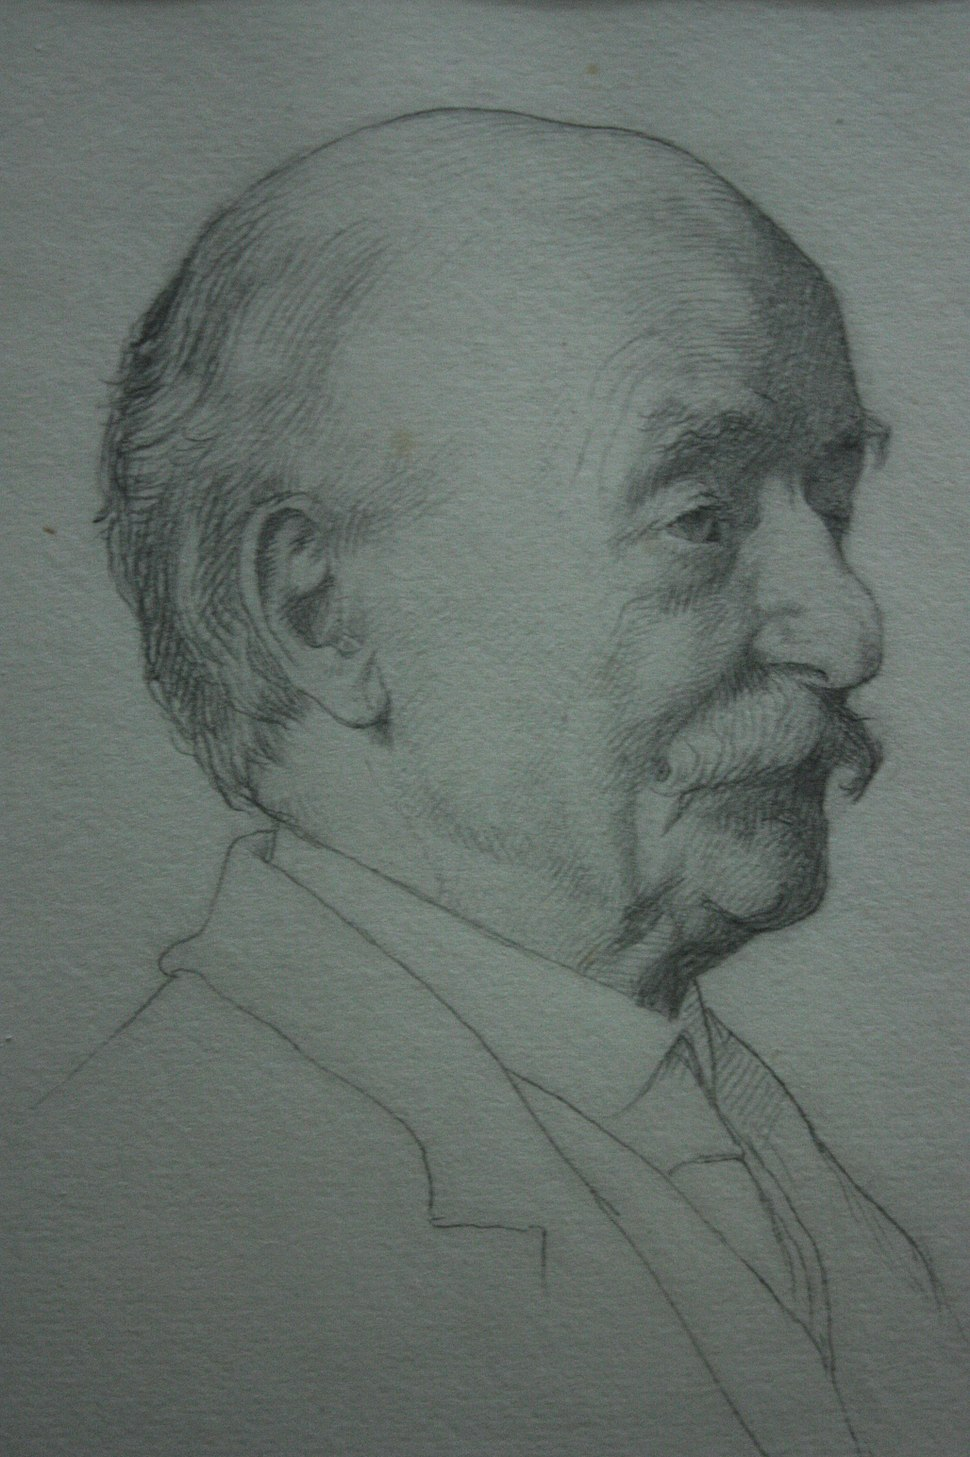 Thomas Hardy aged 70, by William Strang